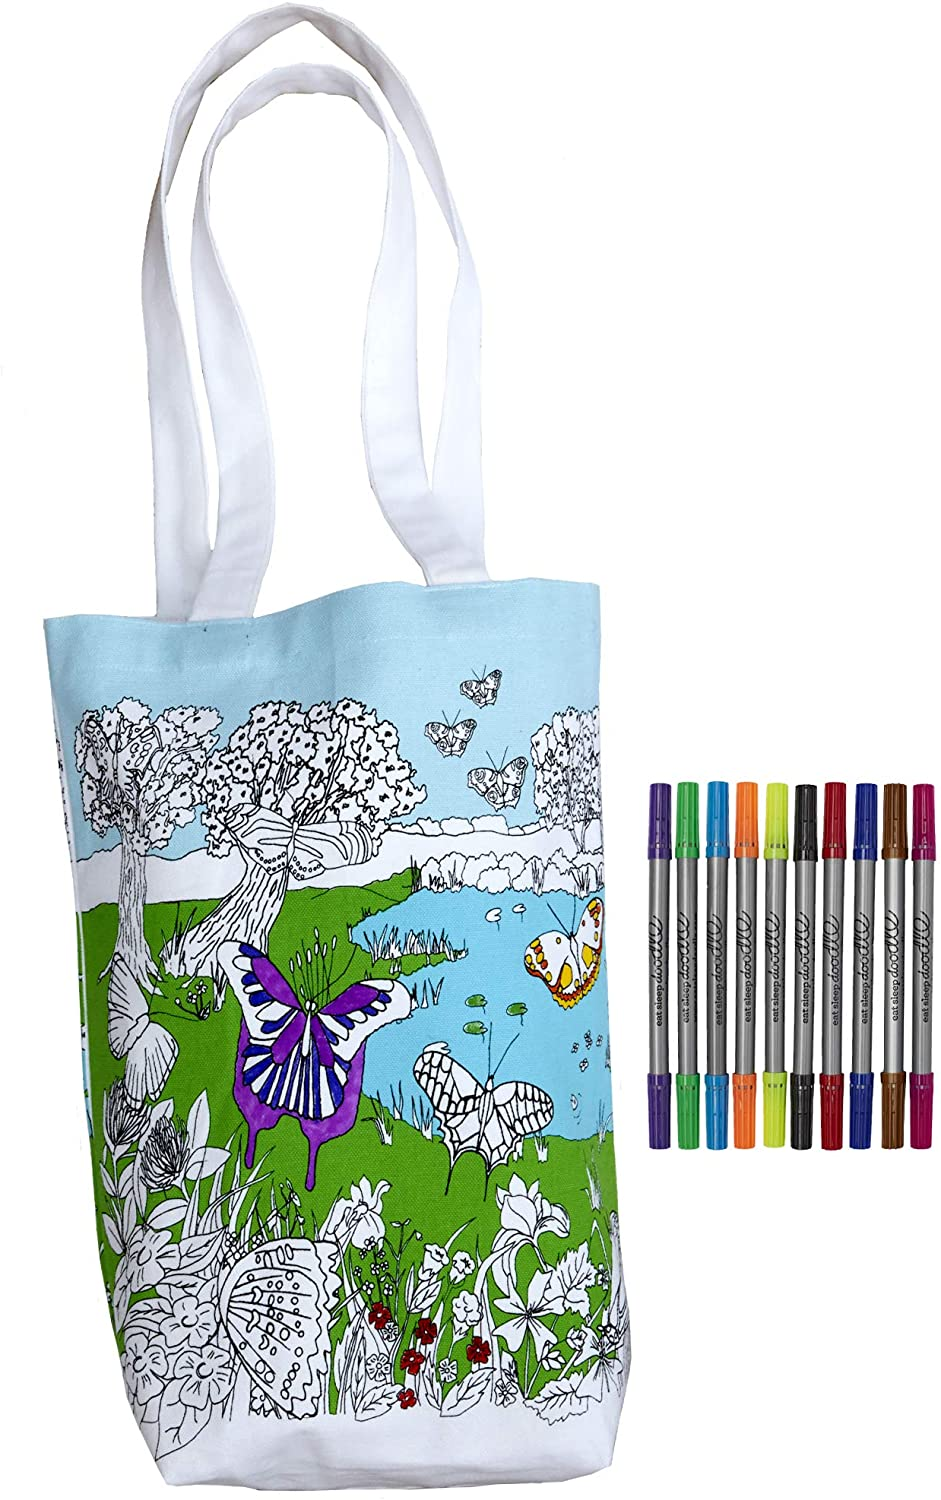 Eatsleepdoodle Tote Bag - Children School Bag with Washable Fabric Markers